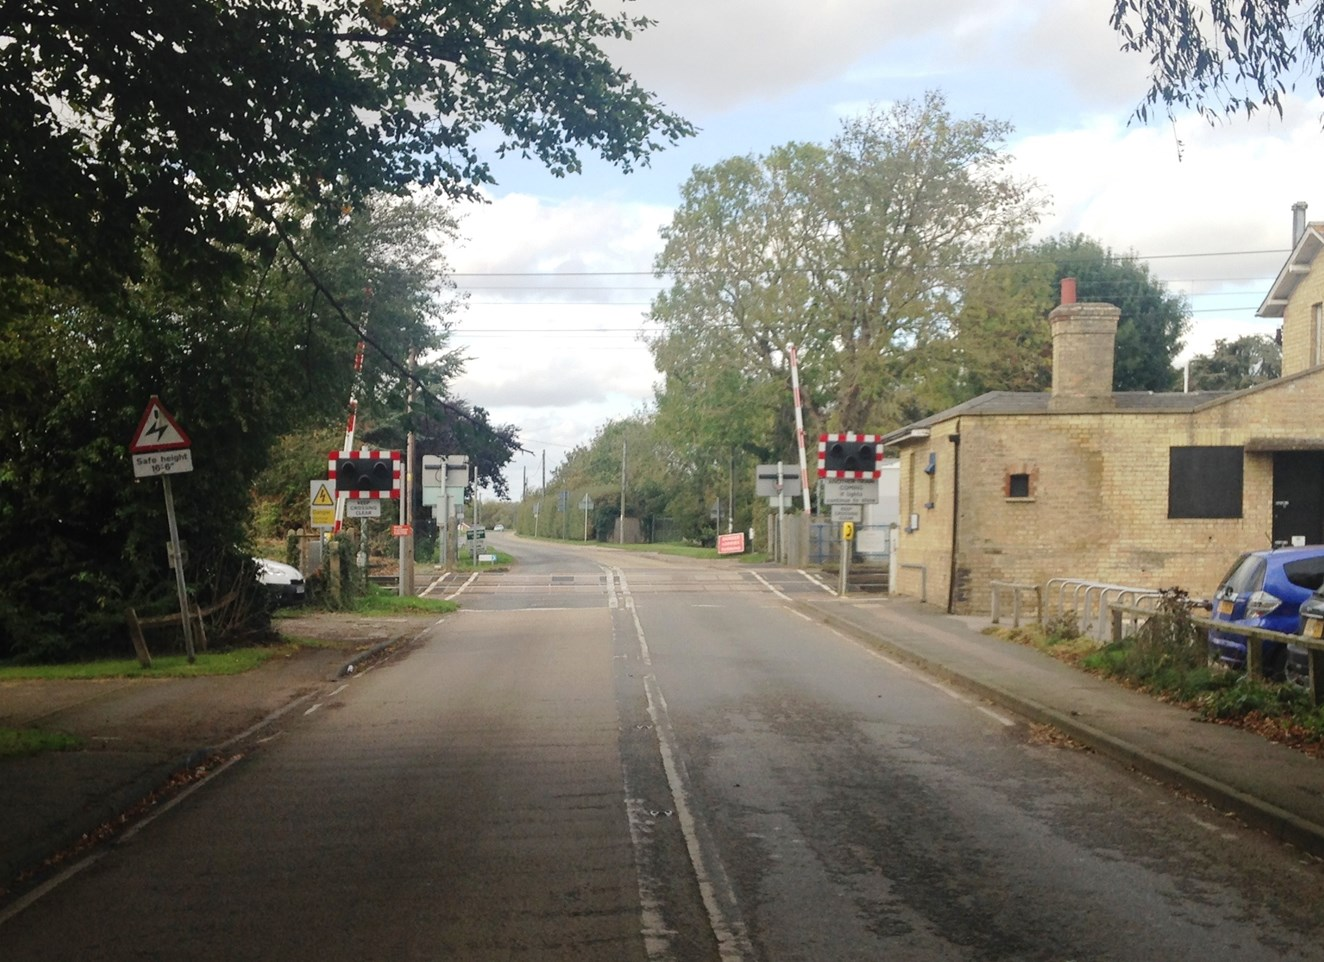 Cambridgeshire level crossing set for safety upgrade: Shepreth level crossing upgrade